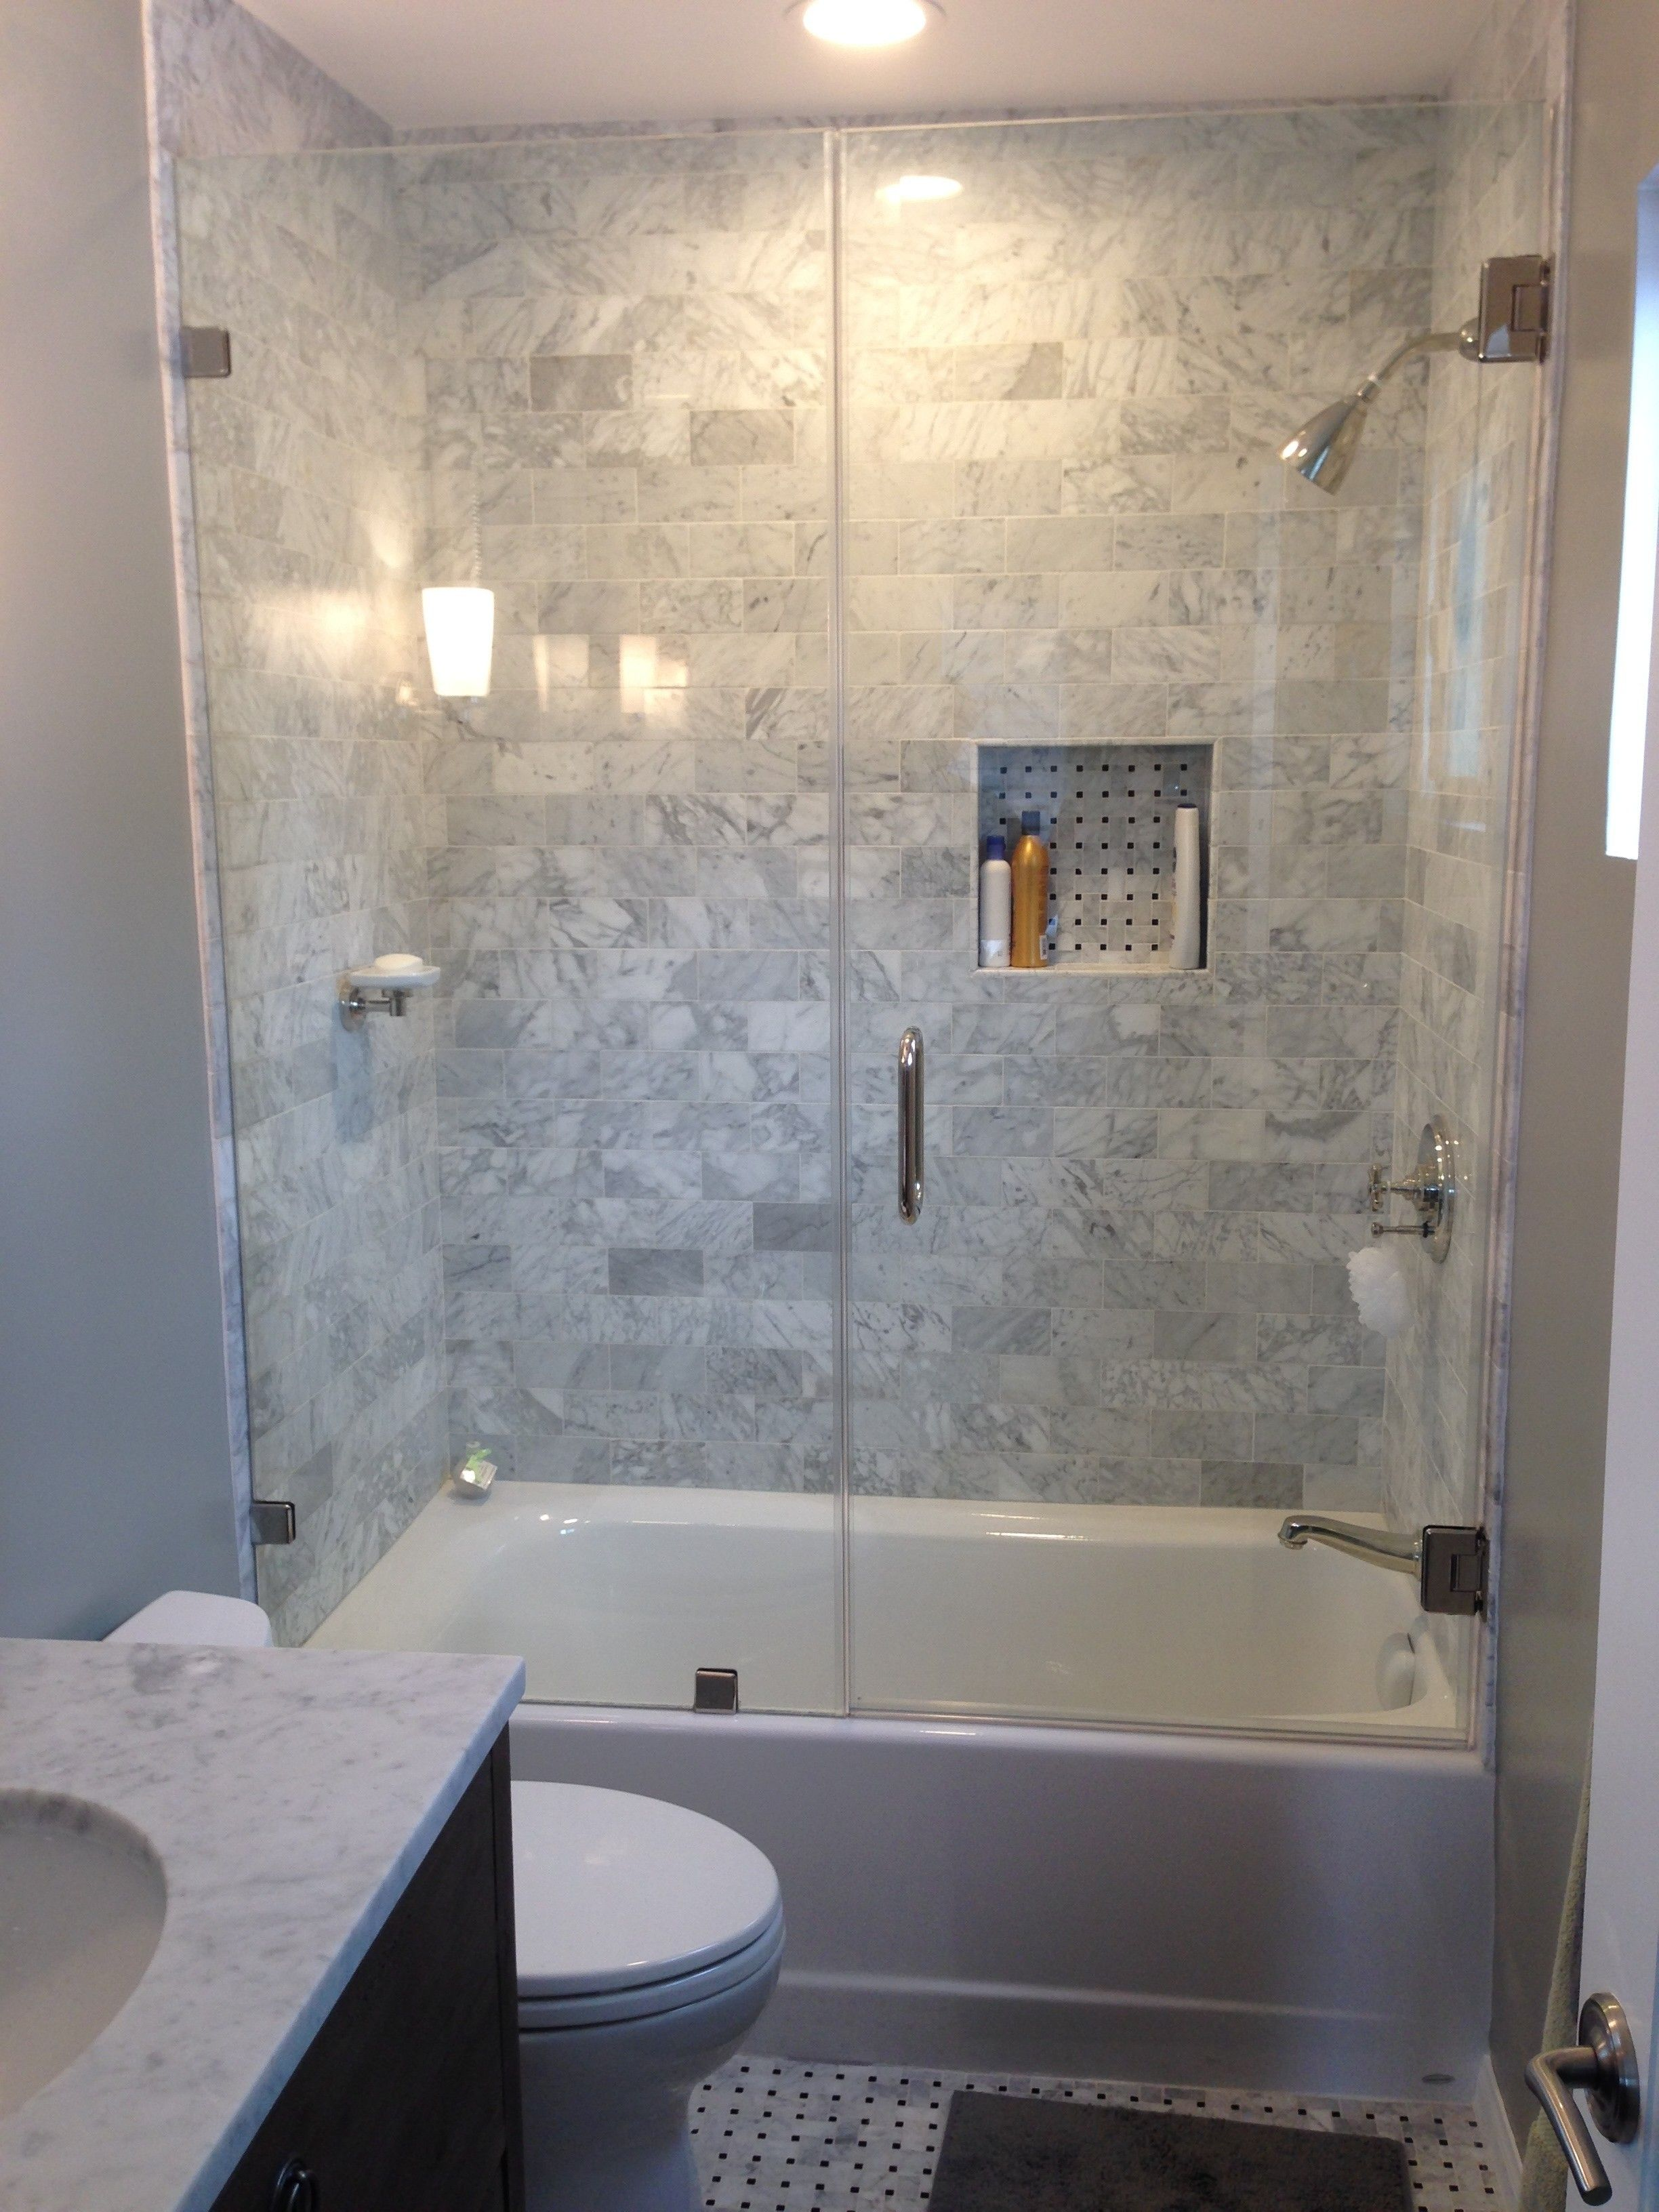 Coolbrilliant 10 Stunning Bathroom Shower Tile Ideas